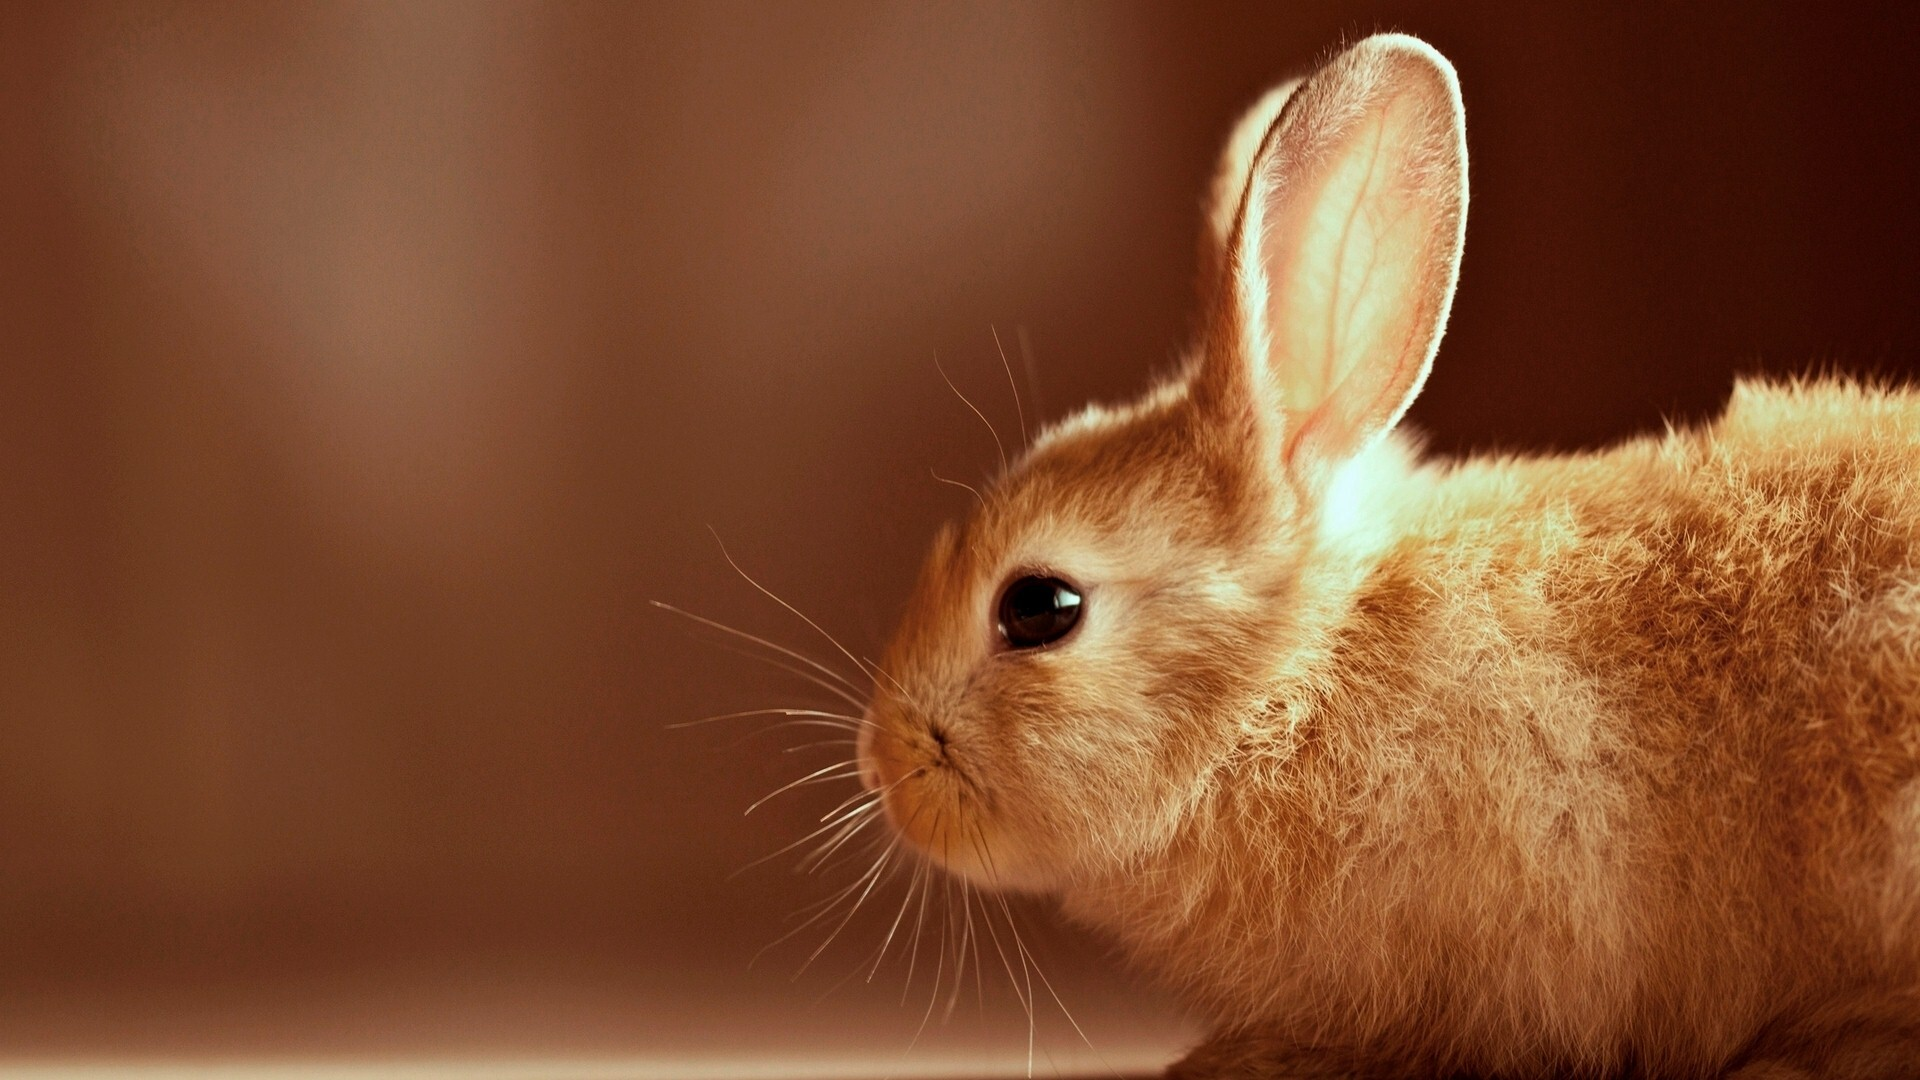 Hd image of rabbit animal hd wallpapers for Animal wallpaper for walls